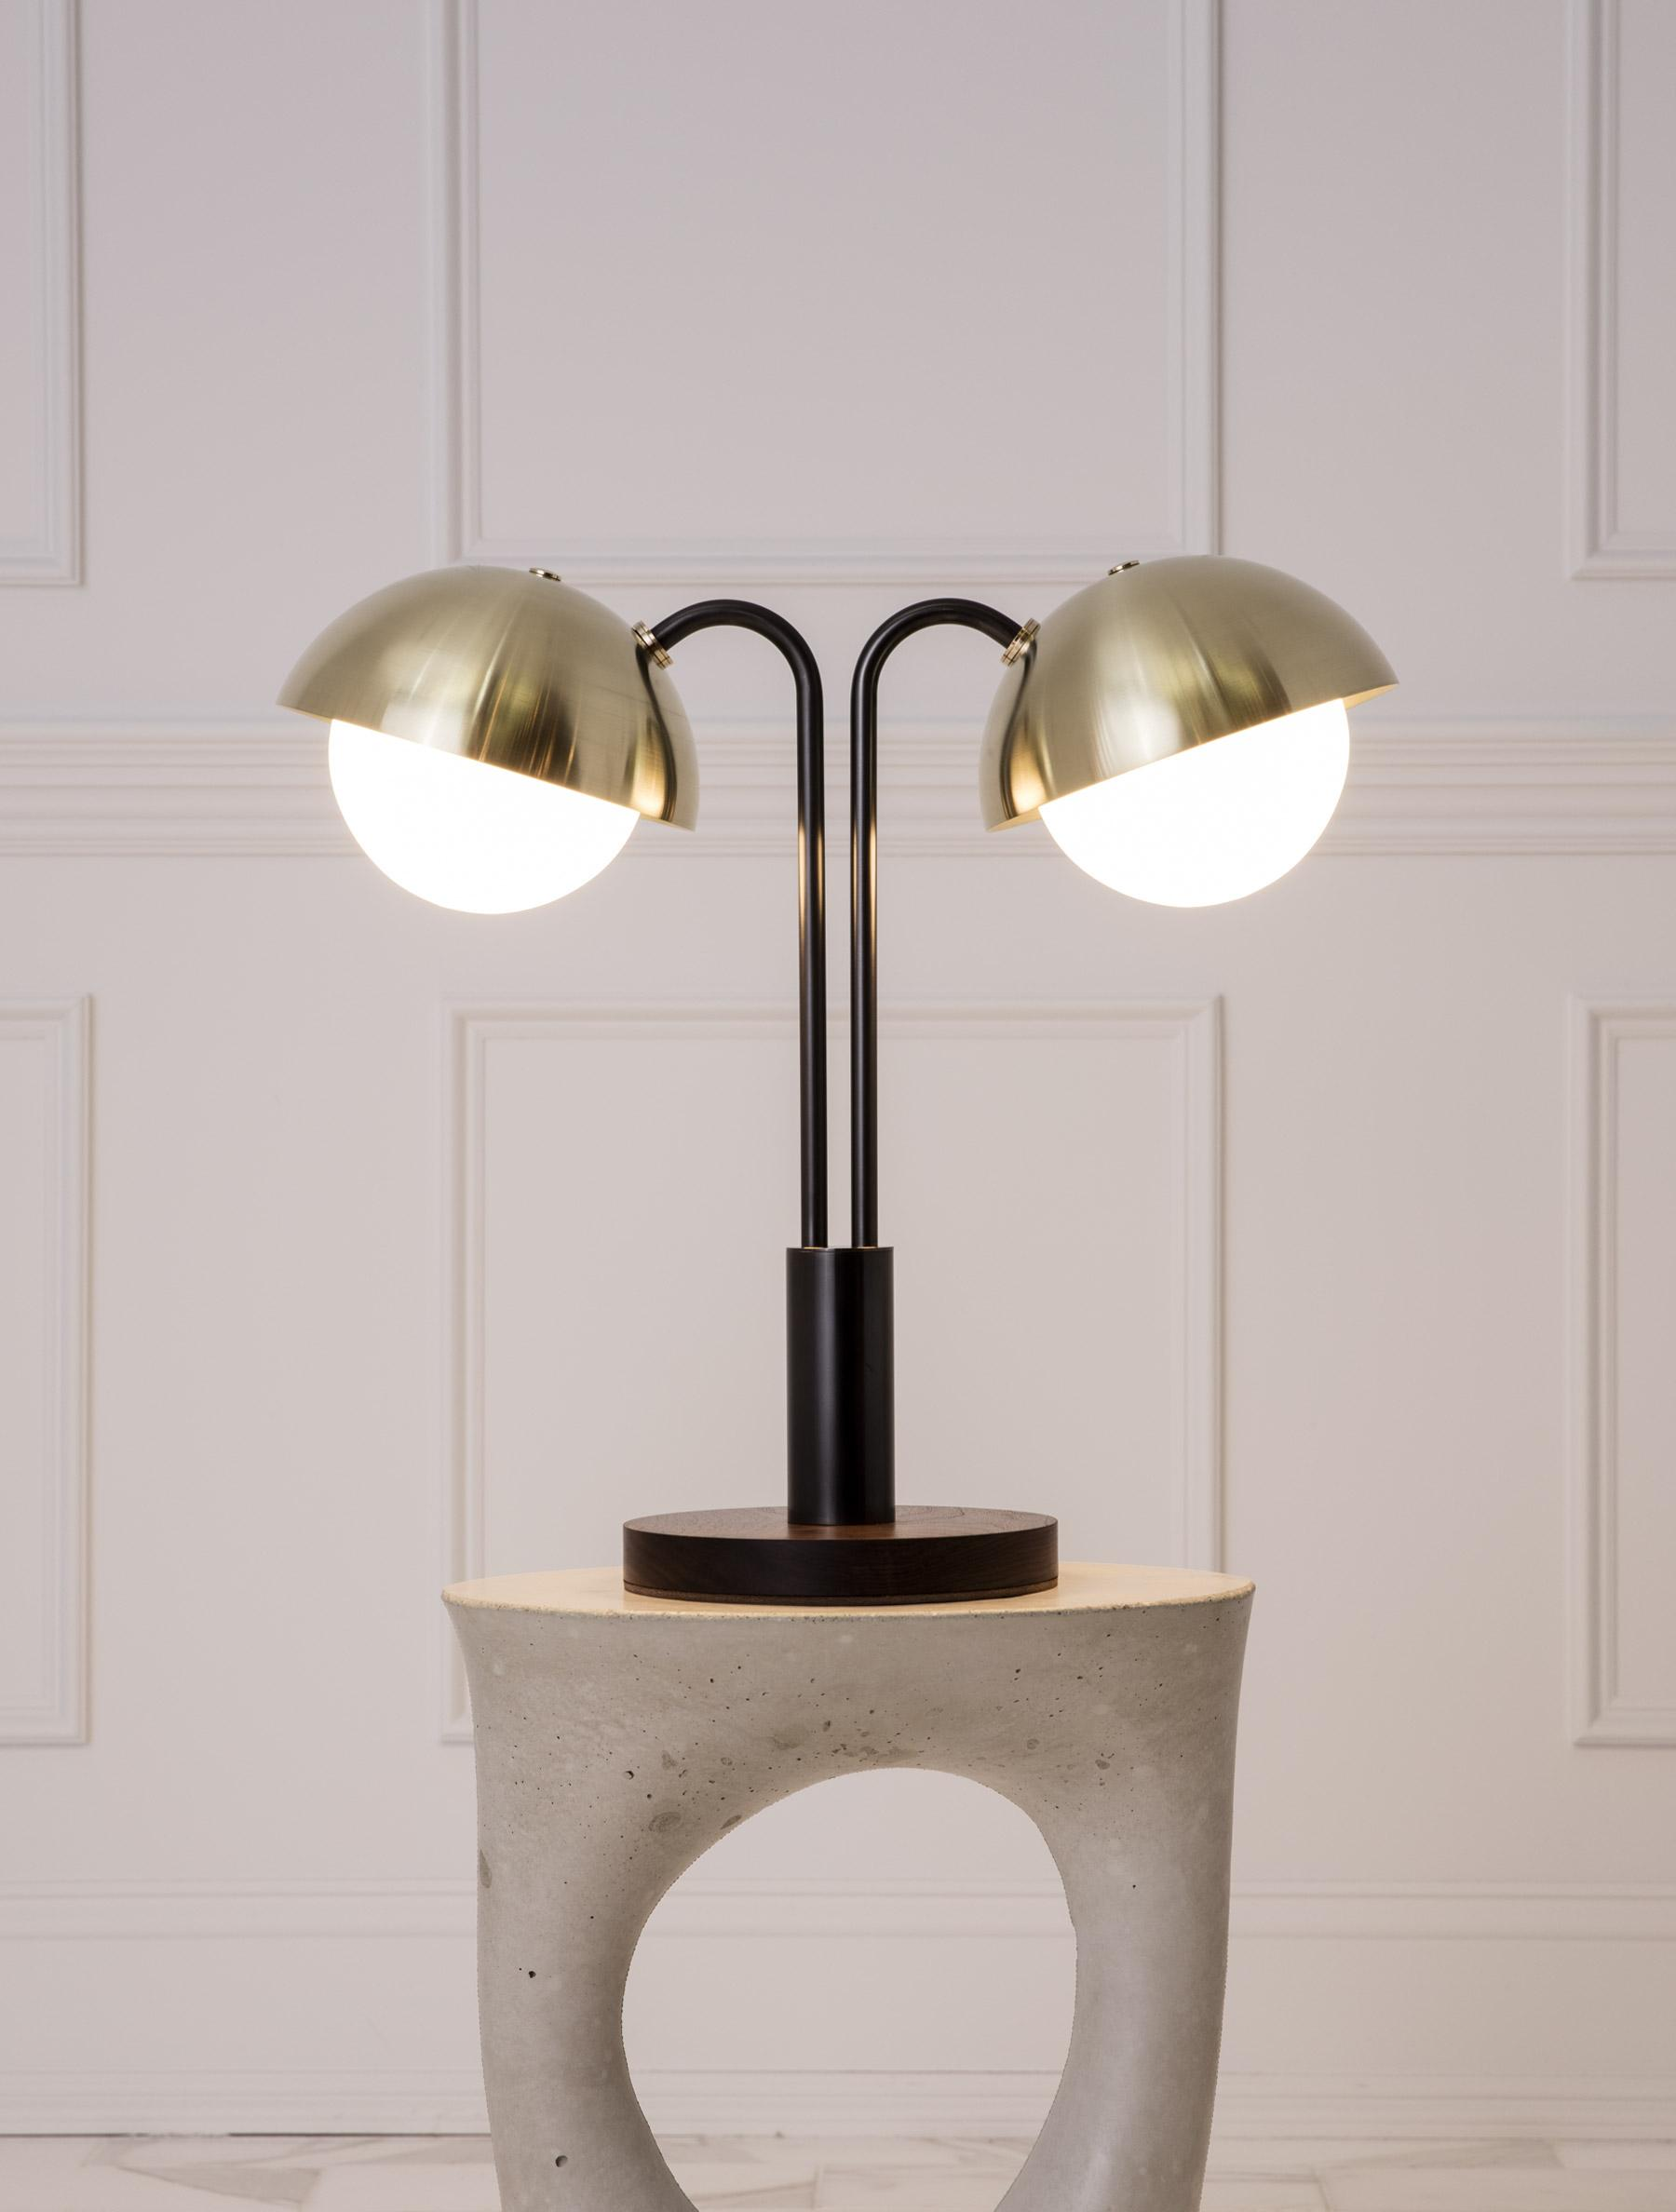 Double Dome Table Lamp shown in Blackened Brass, Brass Domes, Black Walnut Base, Opal Globe